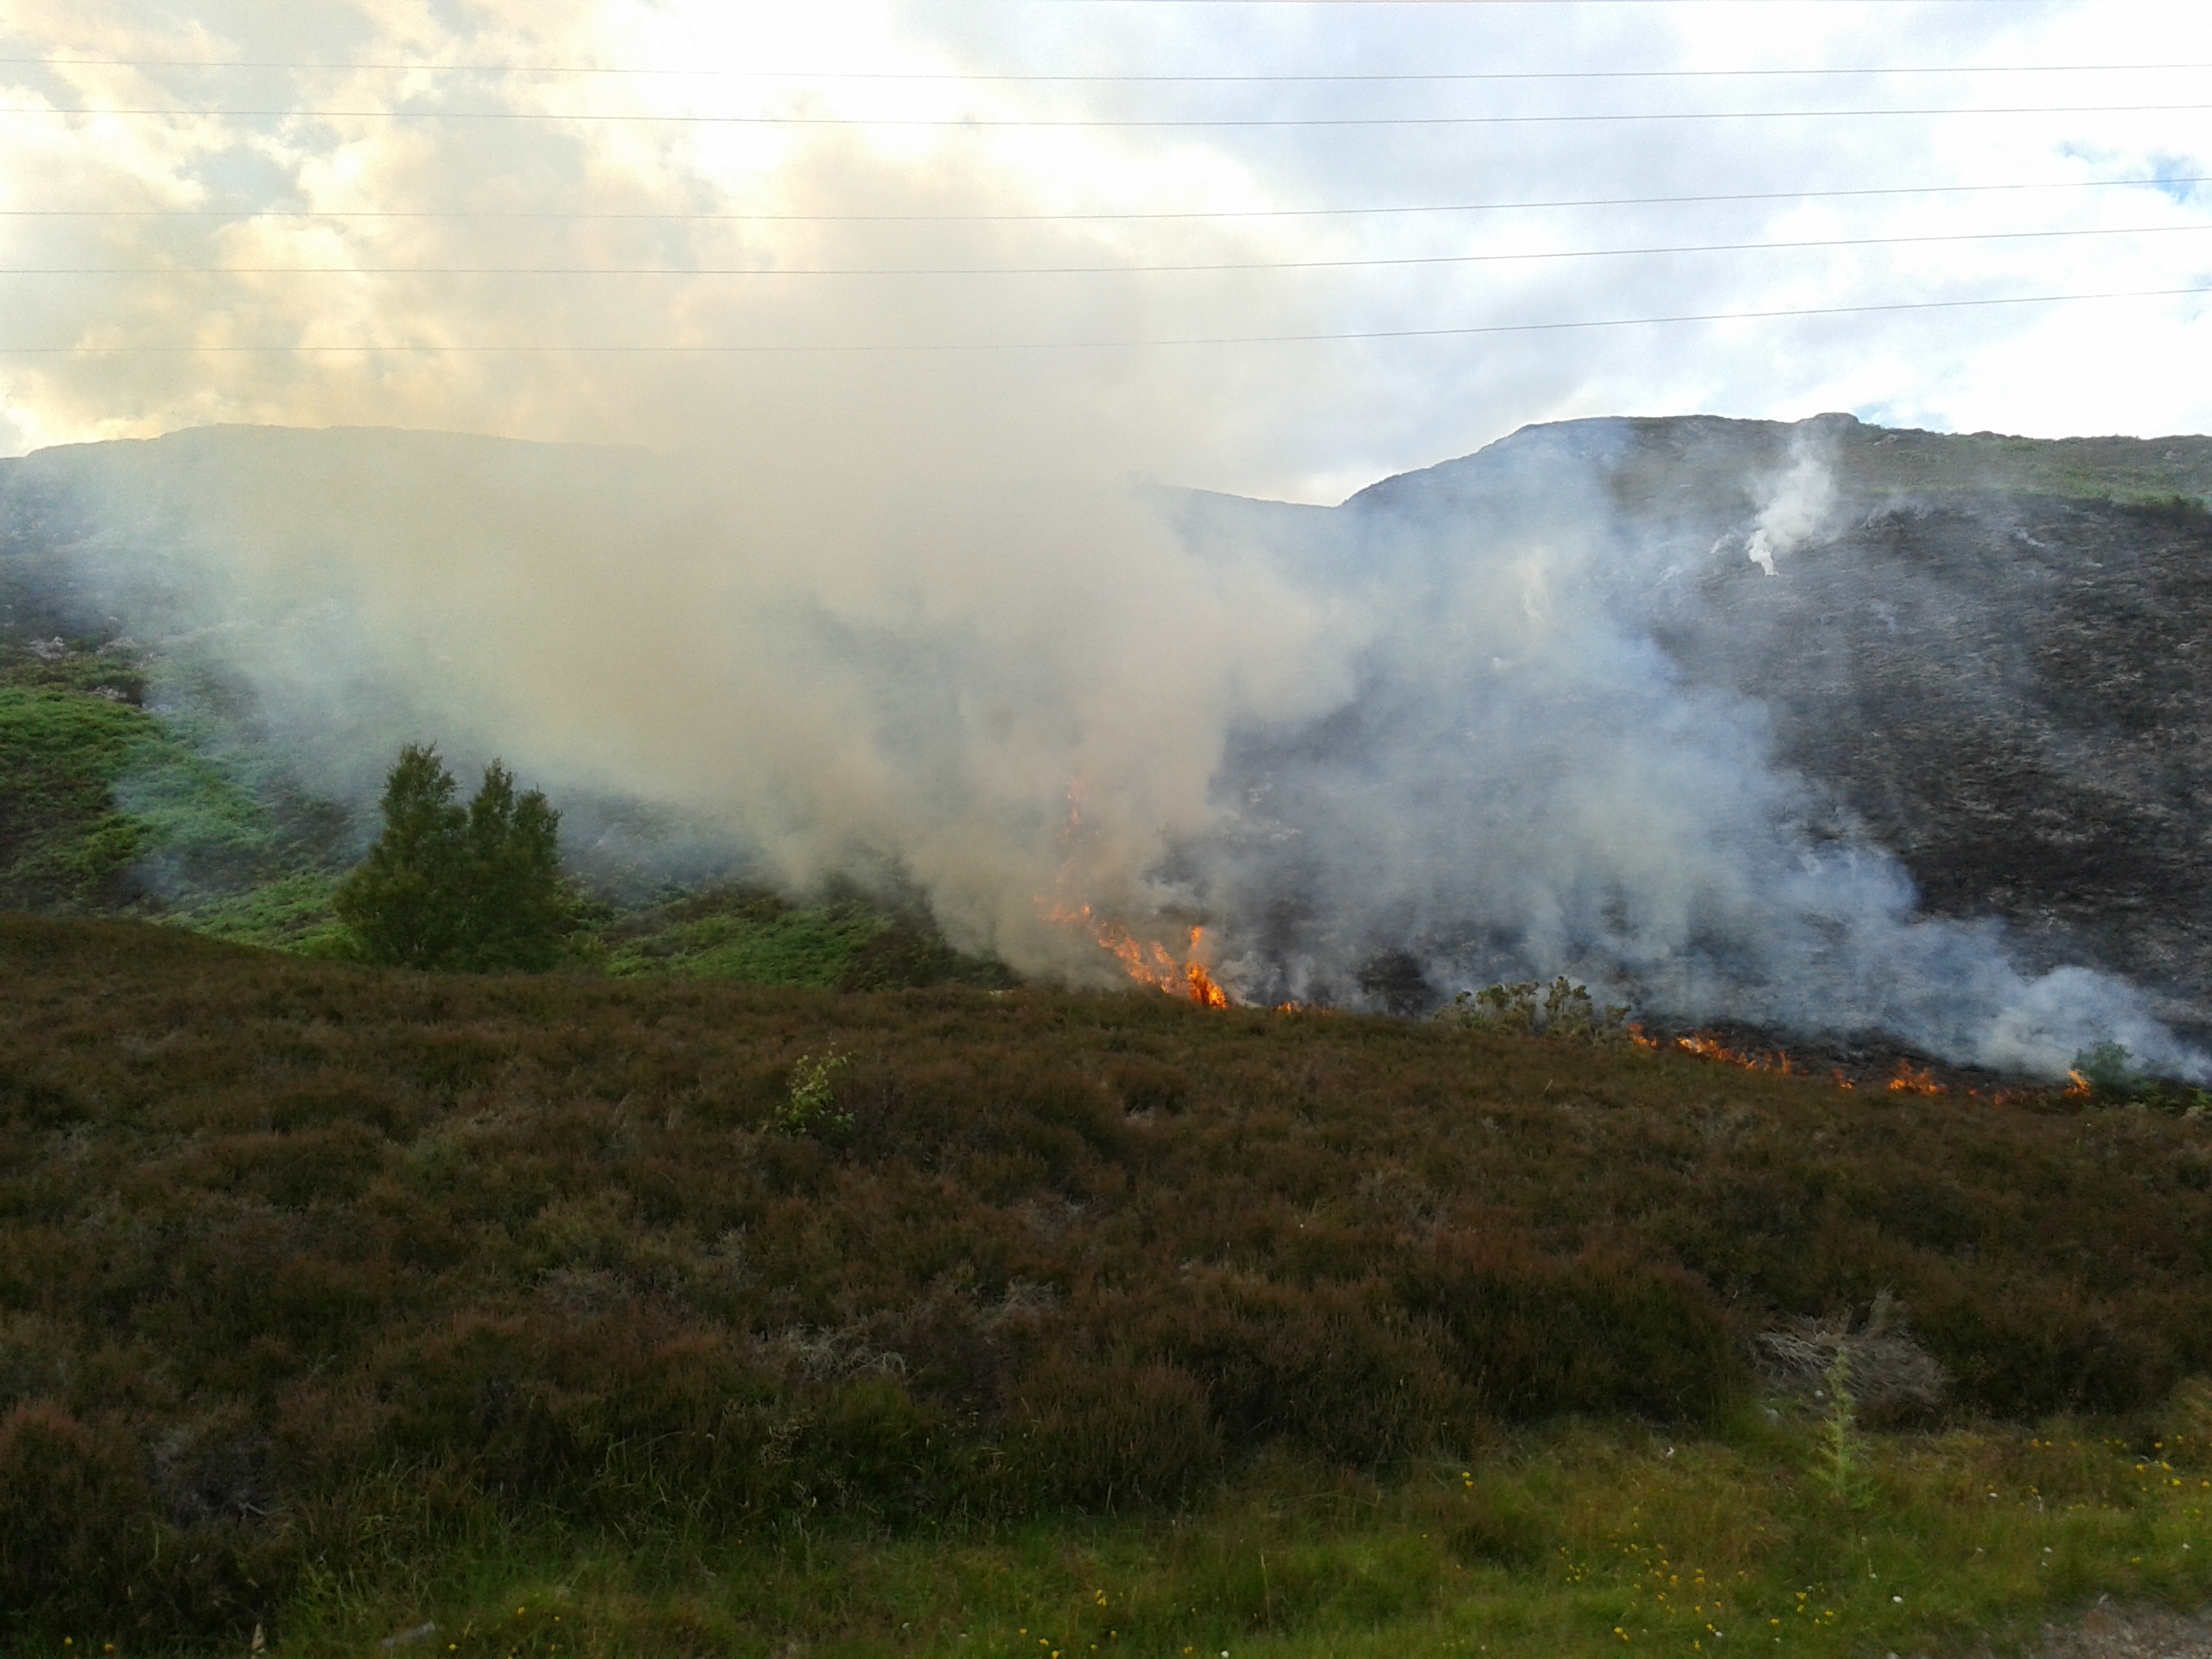 Crews battled wildfire between Inverness and Fort Augustus